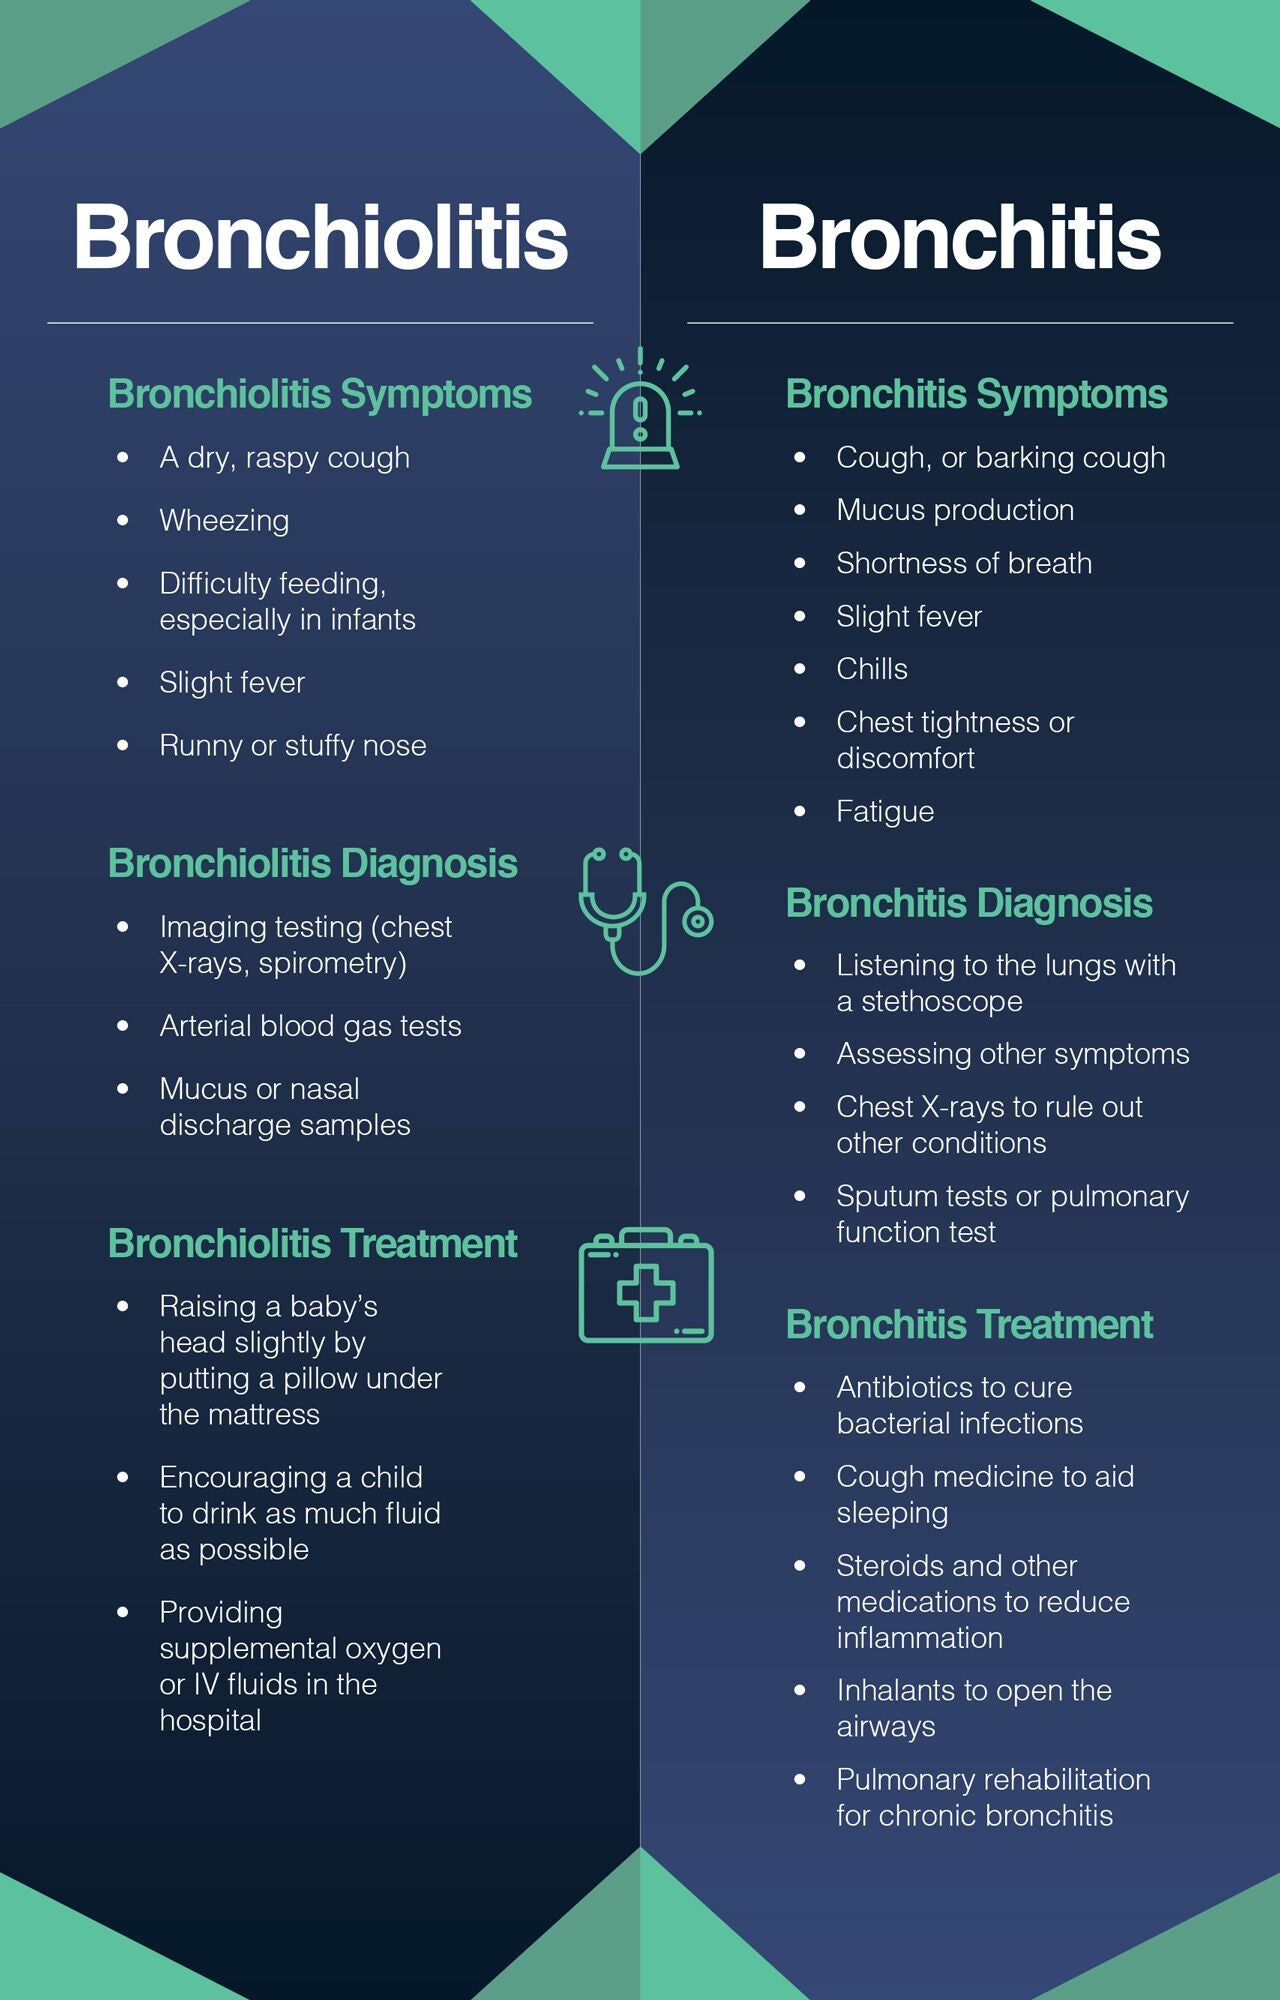 The difference between bronchiolitis and bronchitis